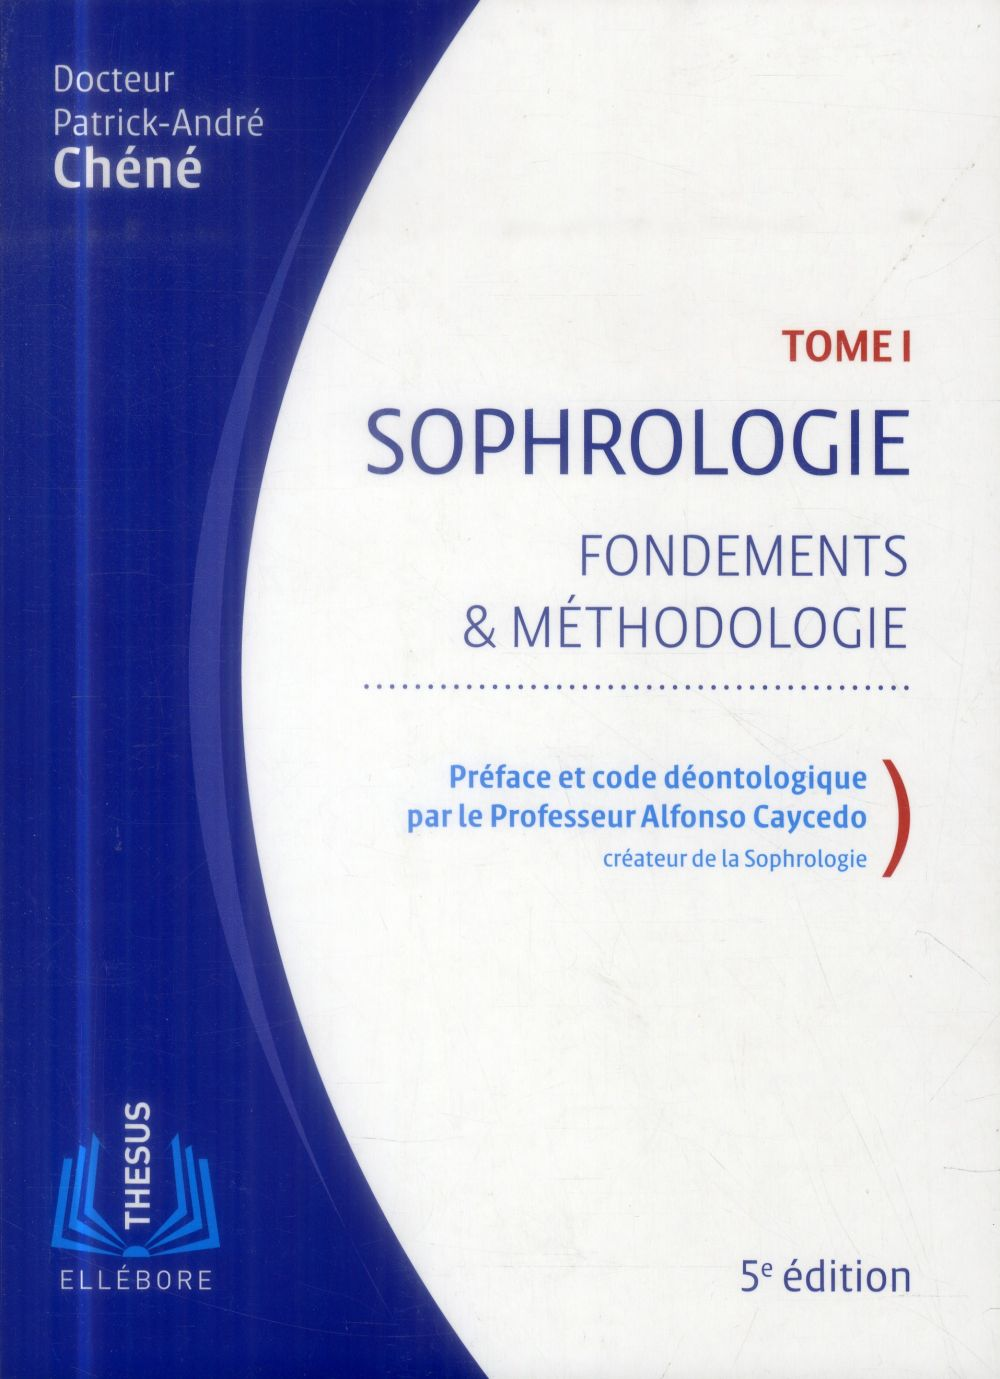 SOPHROLOGIE T1 - FONDEMENTS & METHODOLOGIE